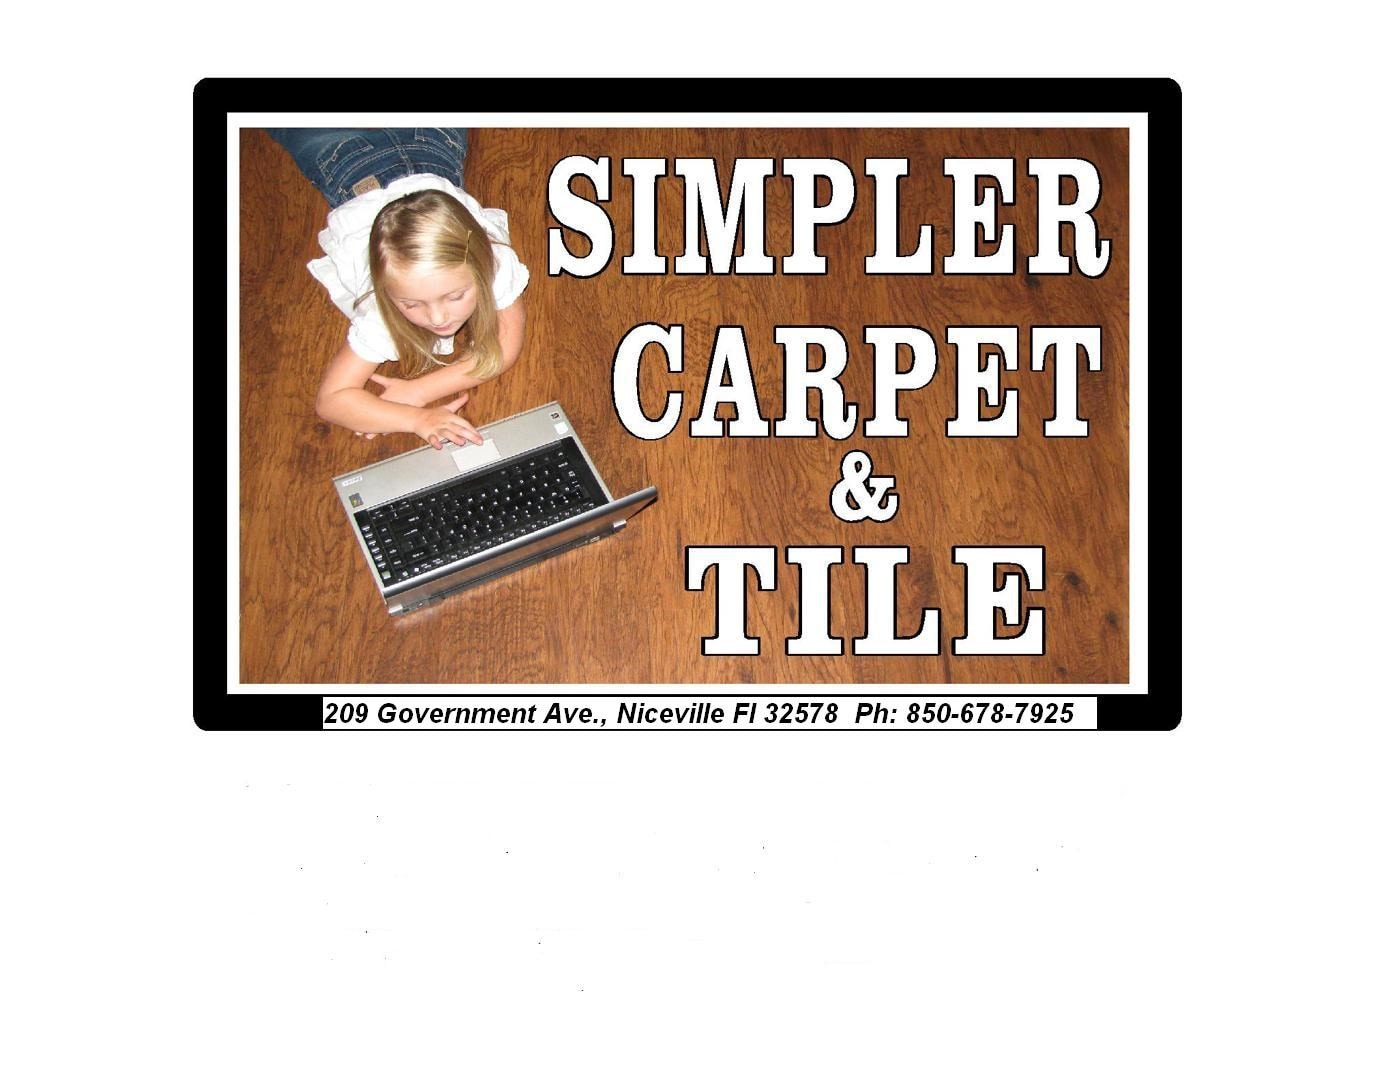 Simpler Carpet & Tile Inc